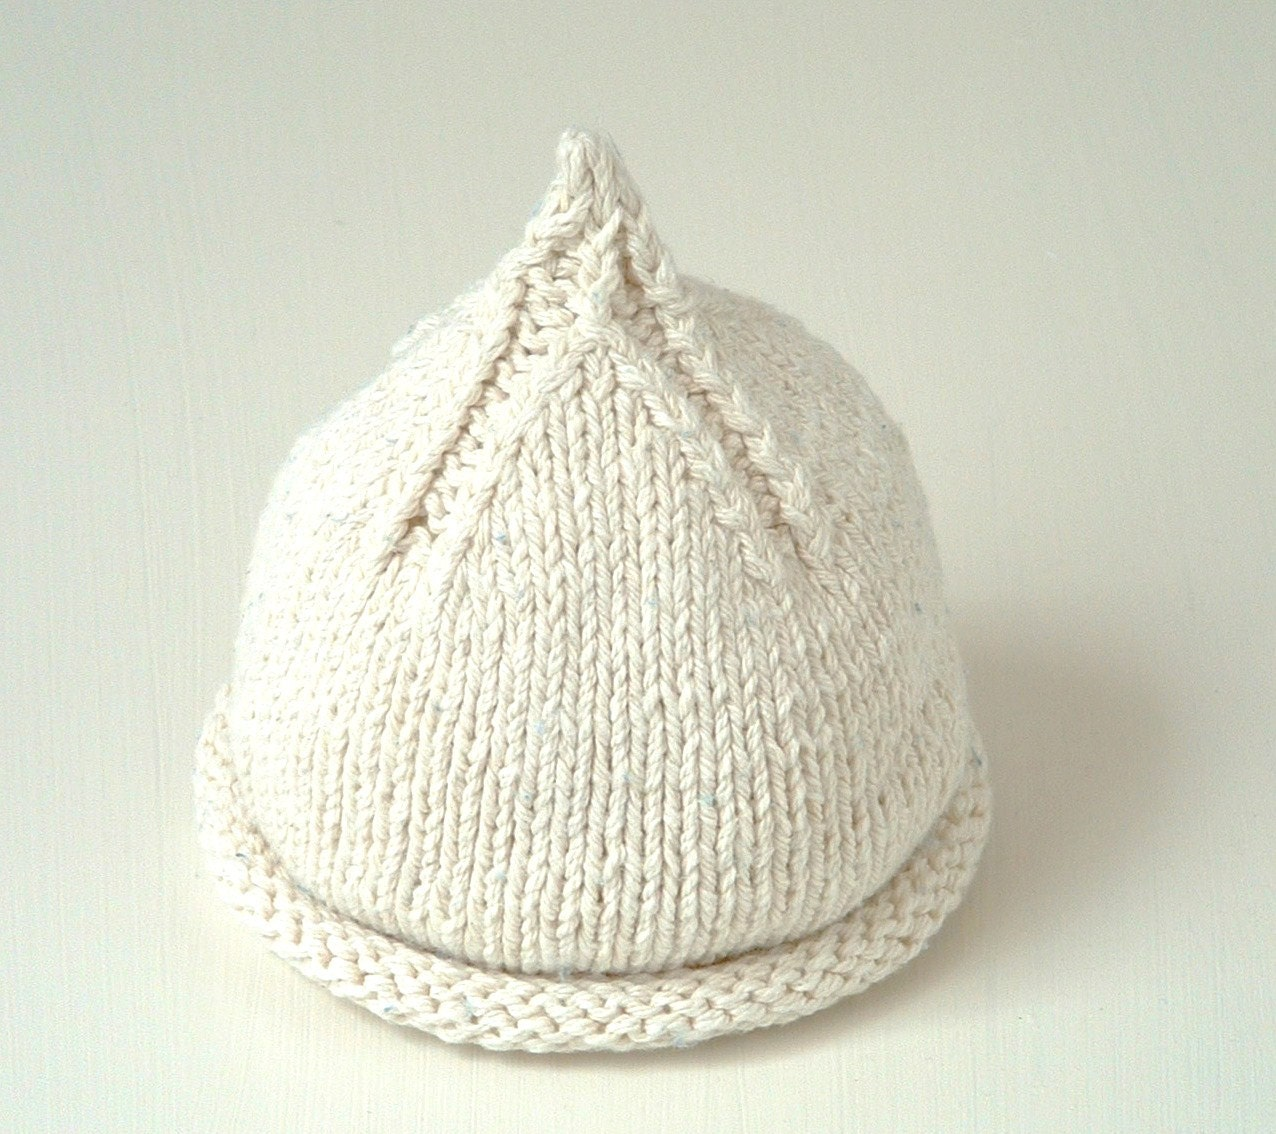 Flat Knitting Patterns : In the Round and Flat knitting PDF Beanie KNITTING PATTERN